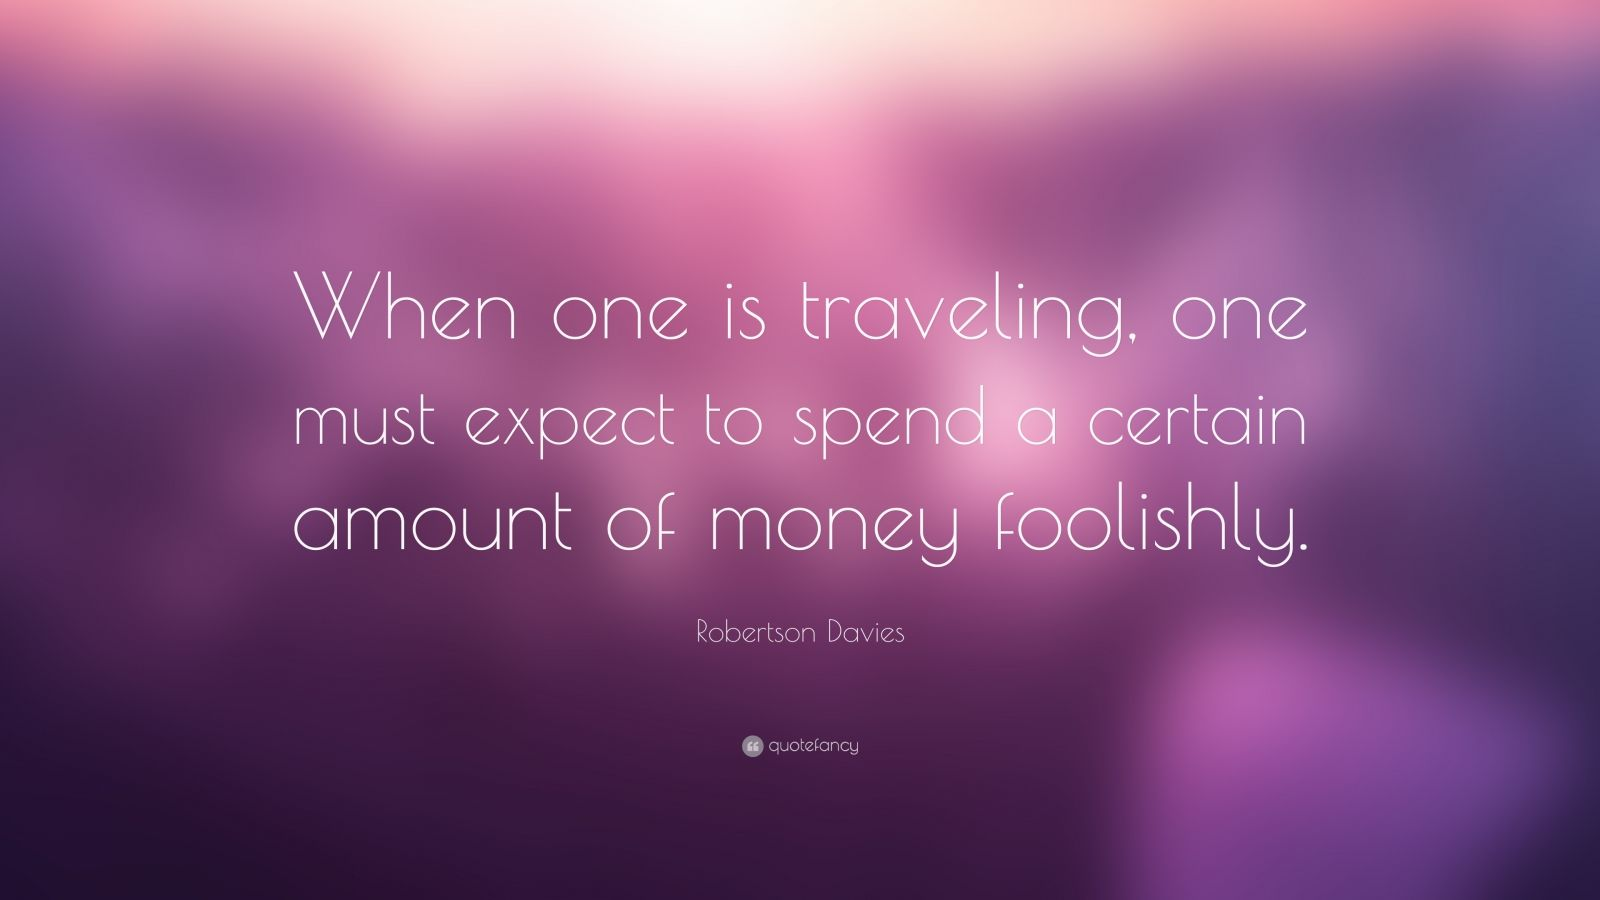 """Robertson Davies Quote: """"When one is traveling, one must expect to spend a certain amount of money foolishly."""""""